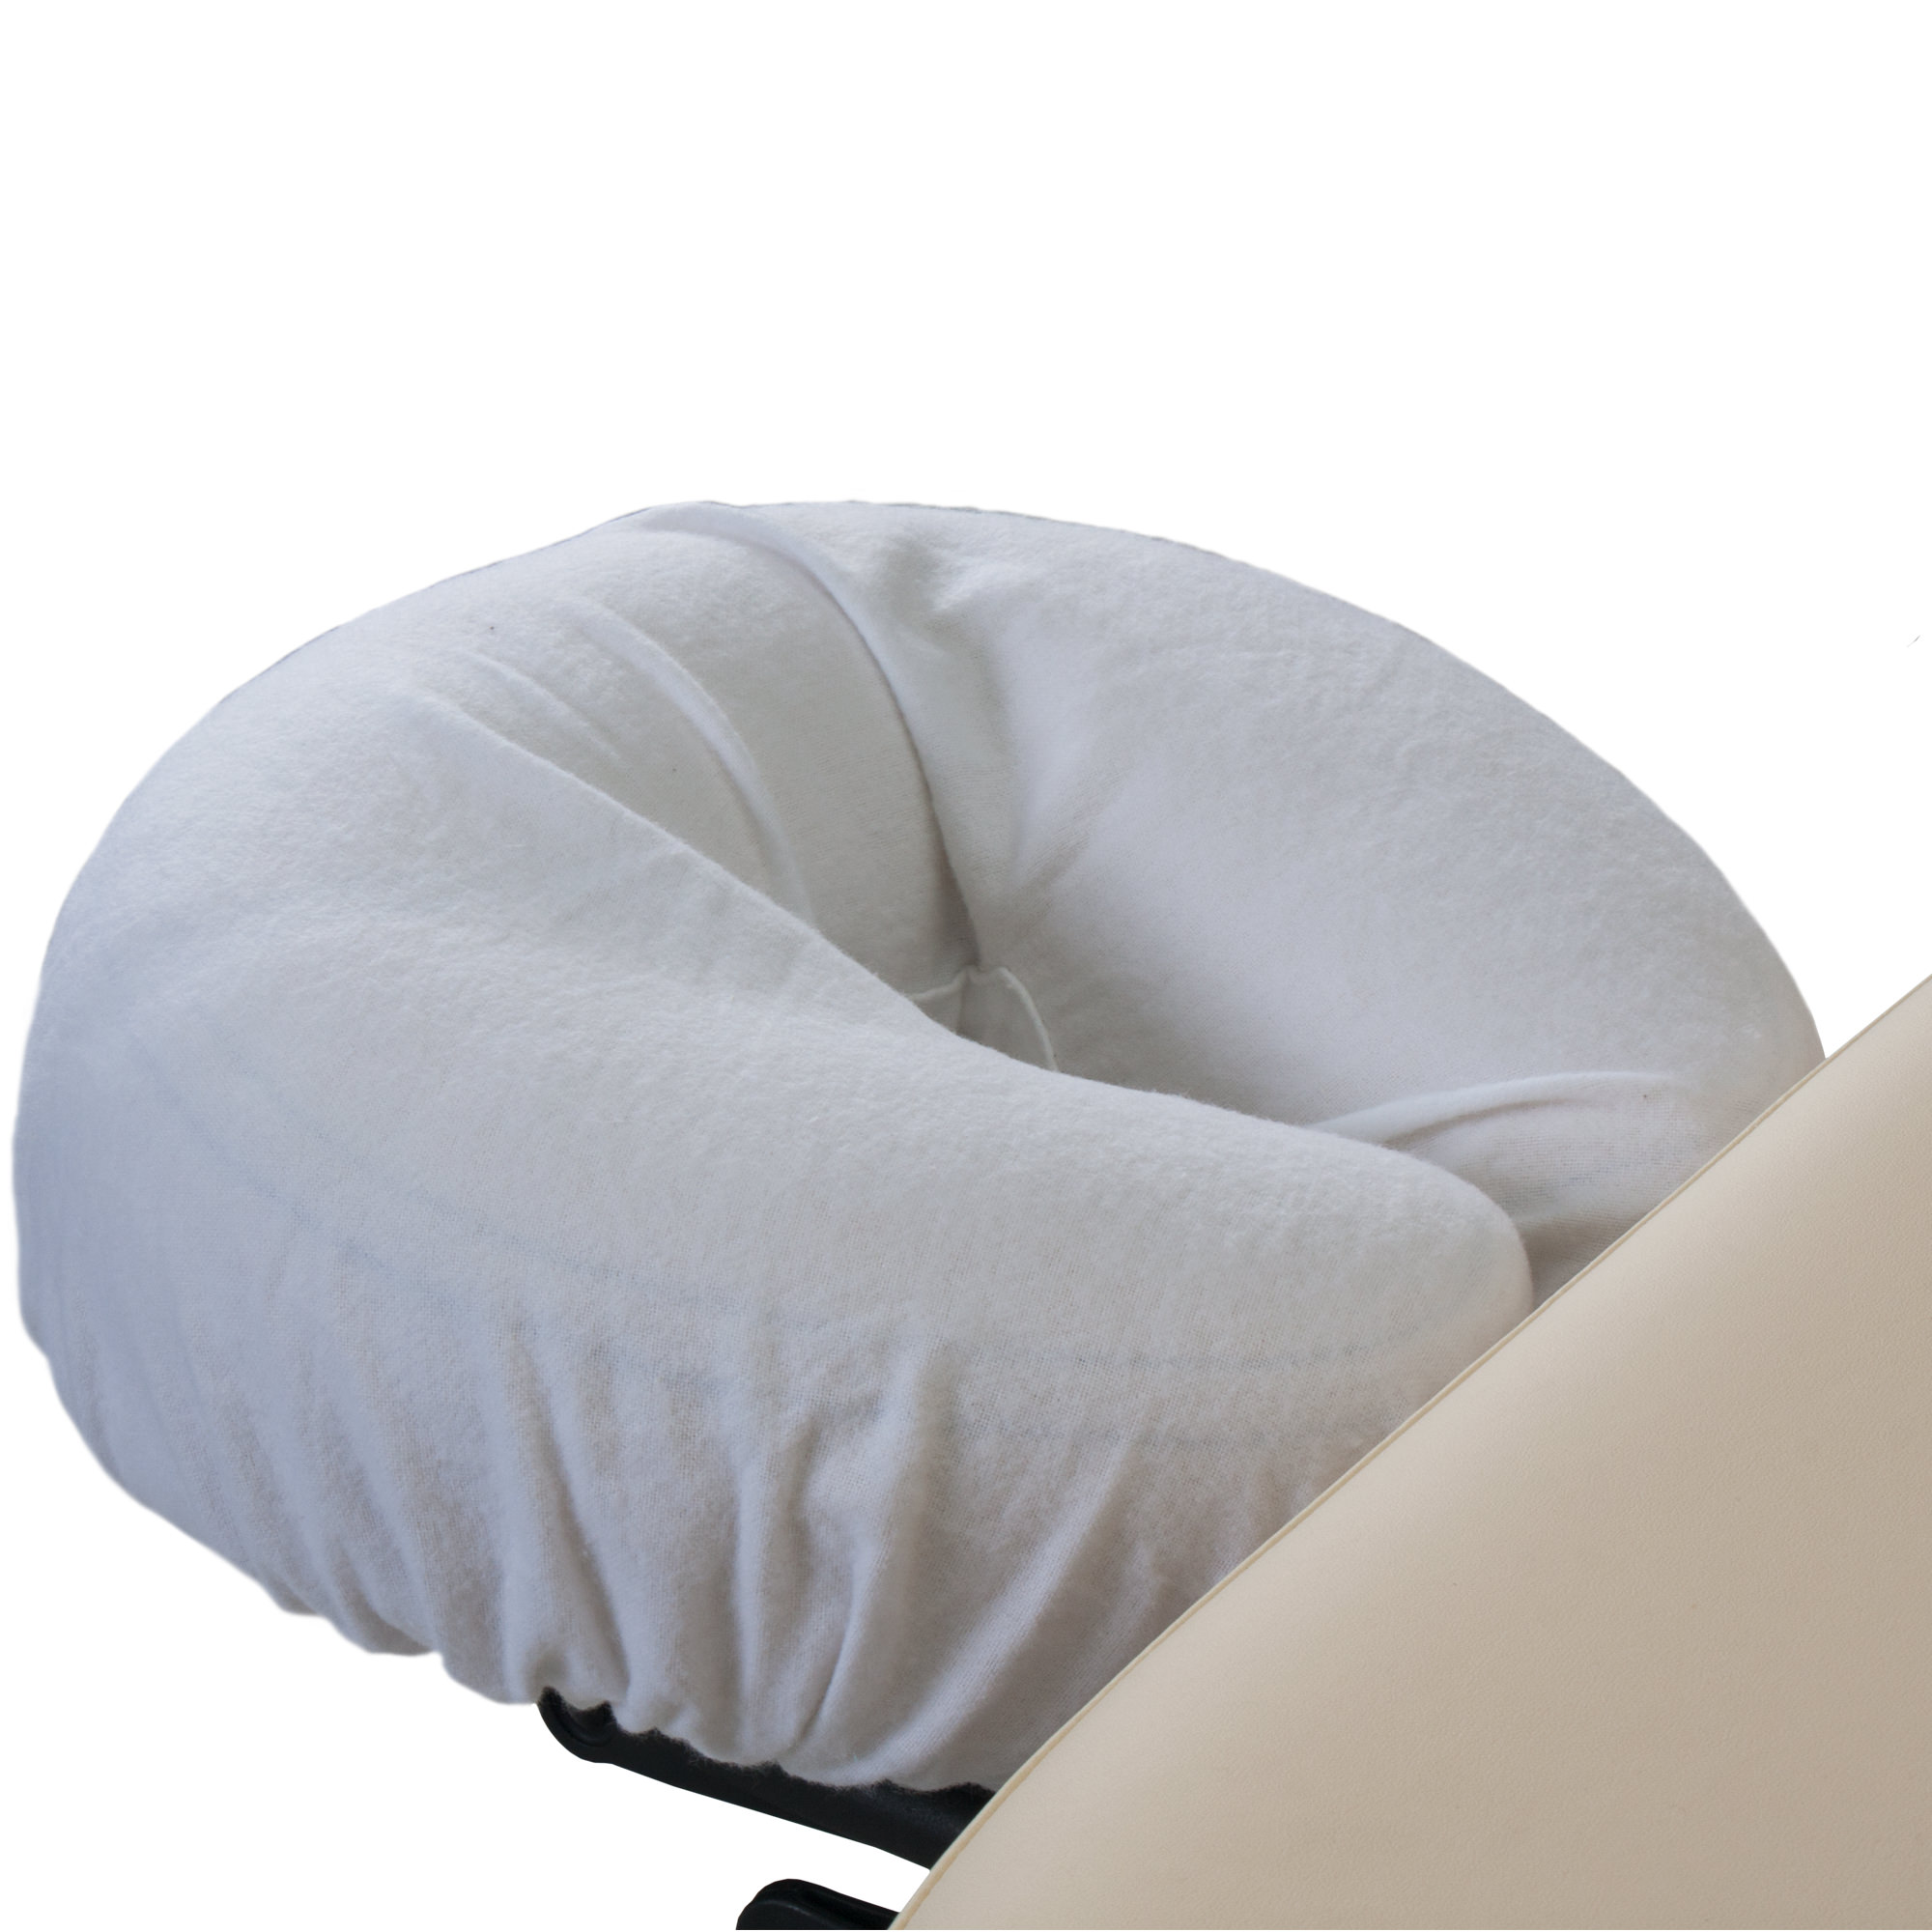 EARTHLITE Professional Flannel Face Pillow Covers - 2 Piece Set, 100% Cotton Flannel Massage Table Headrest Covers, Cradle Covers